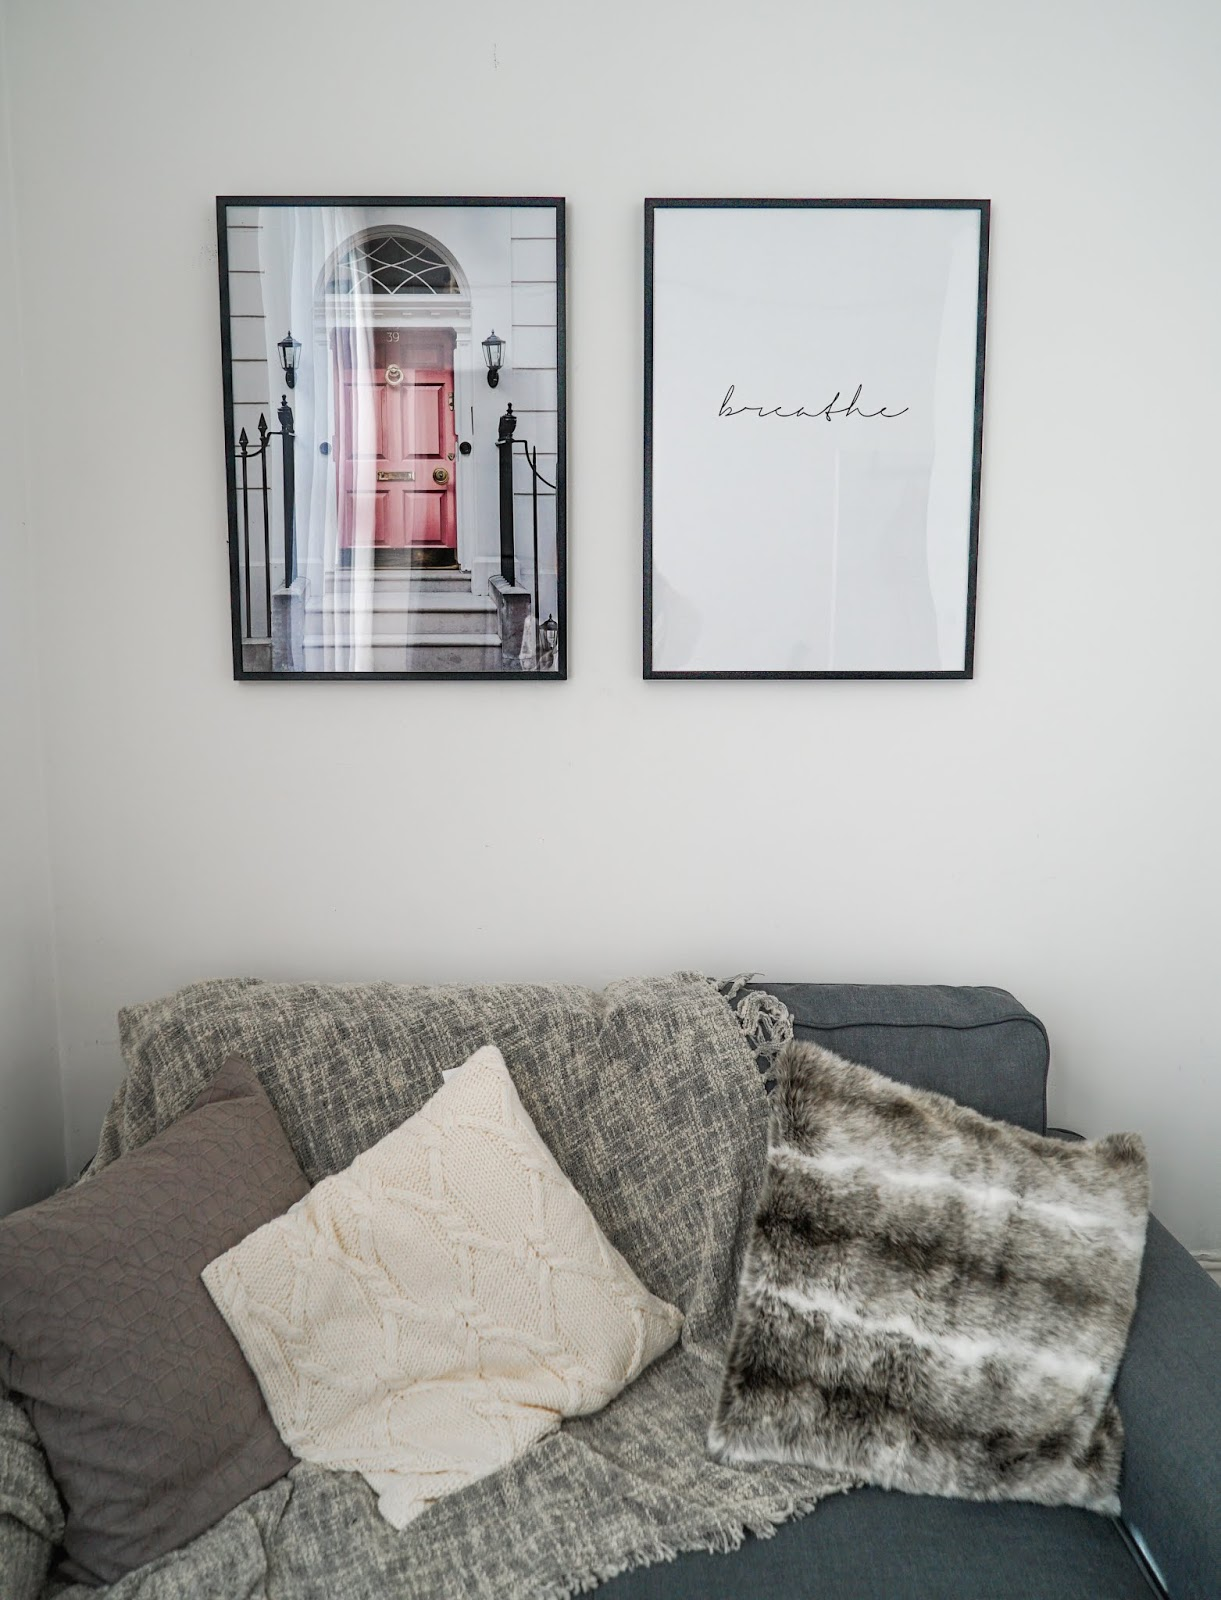 How To Make A Rented Flat Feel Like Home With Desenio - Lauren Rose Style Home Interior Post / London UK Blogger